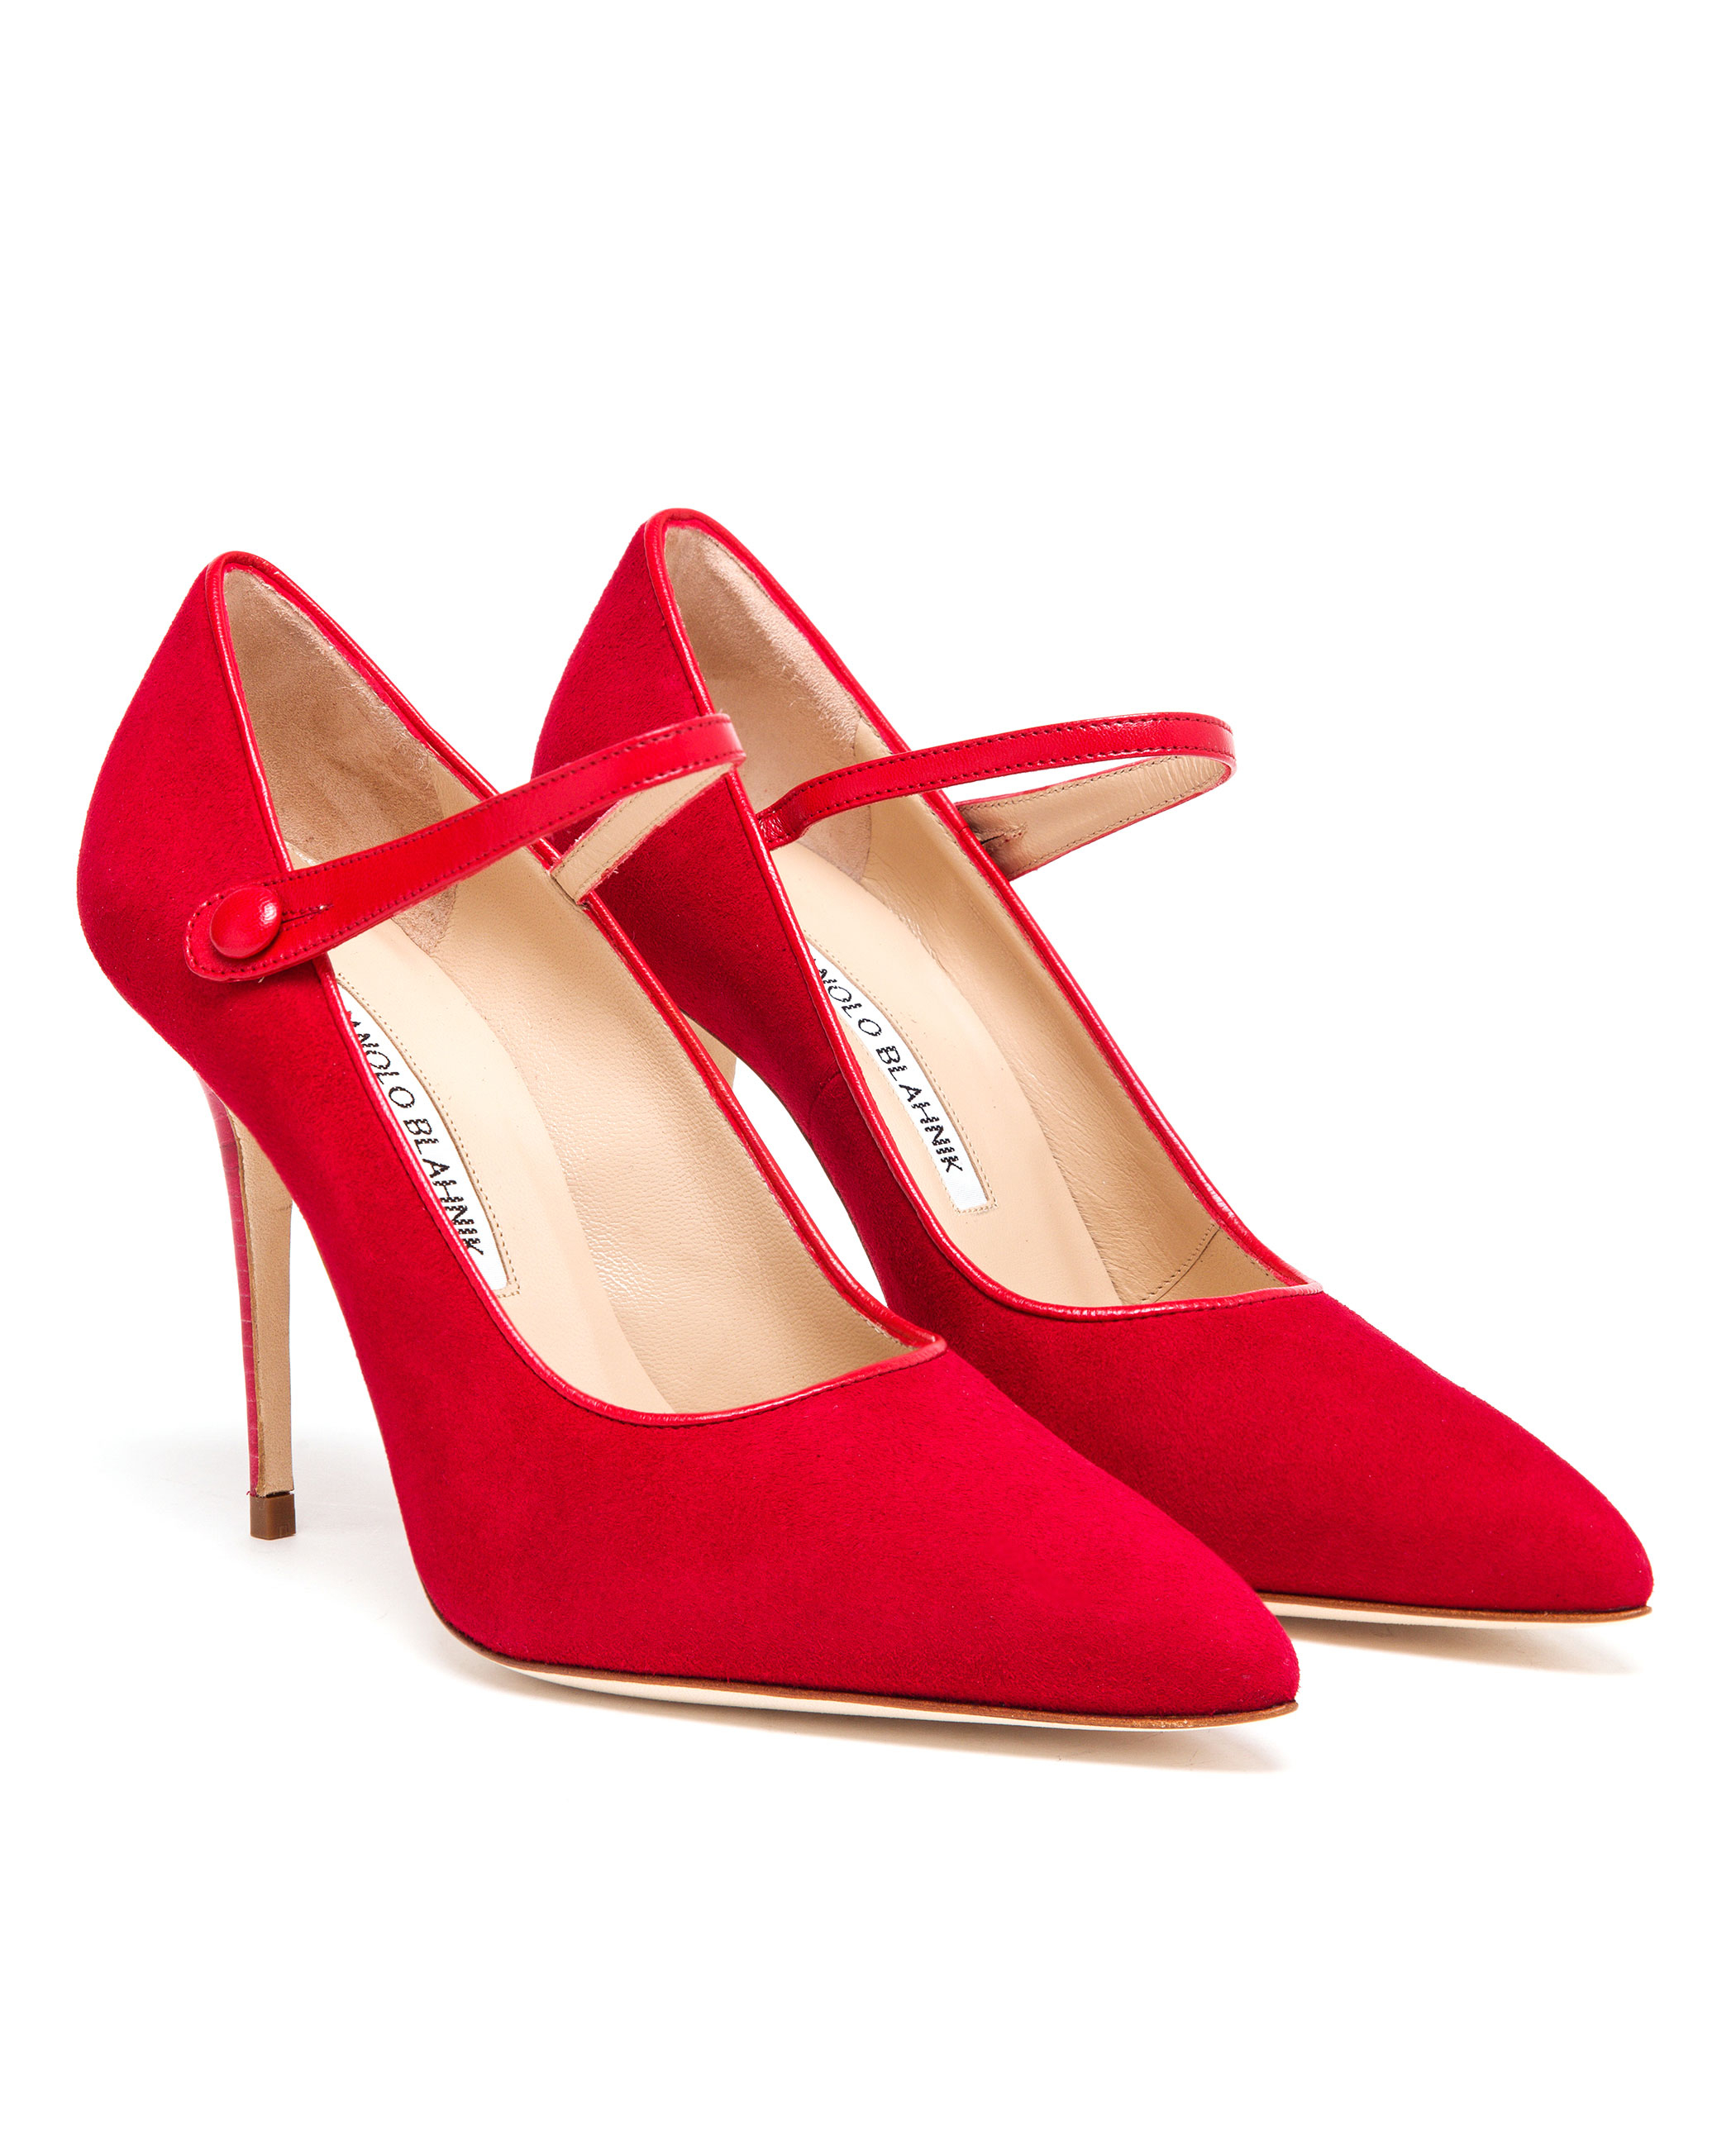 manolo blahnik red heels